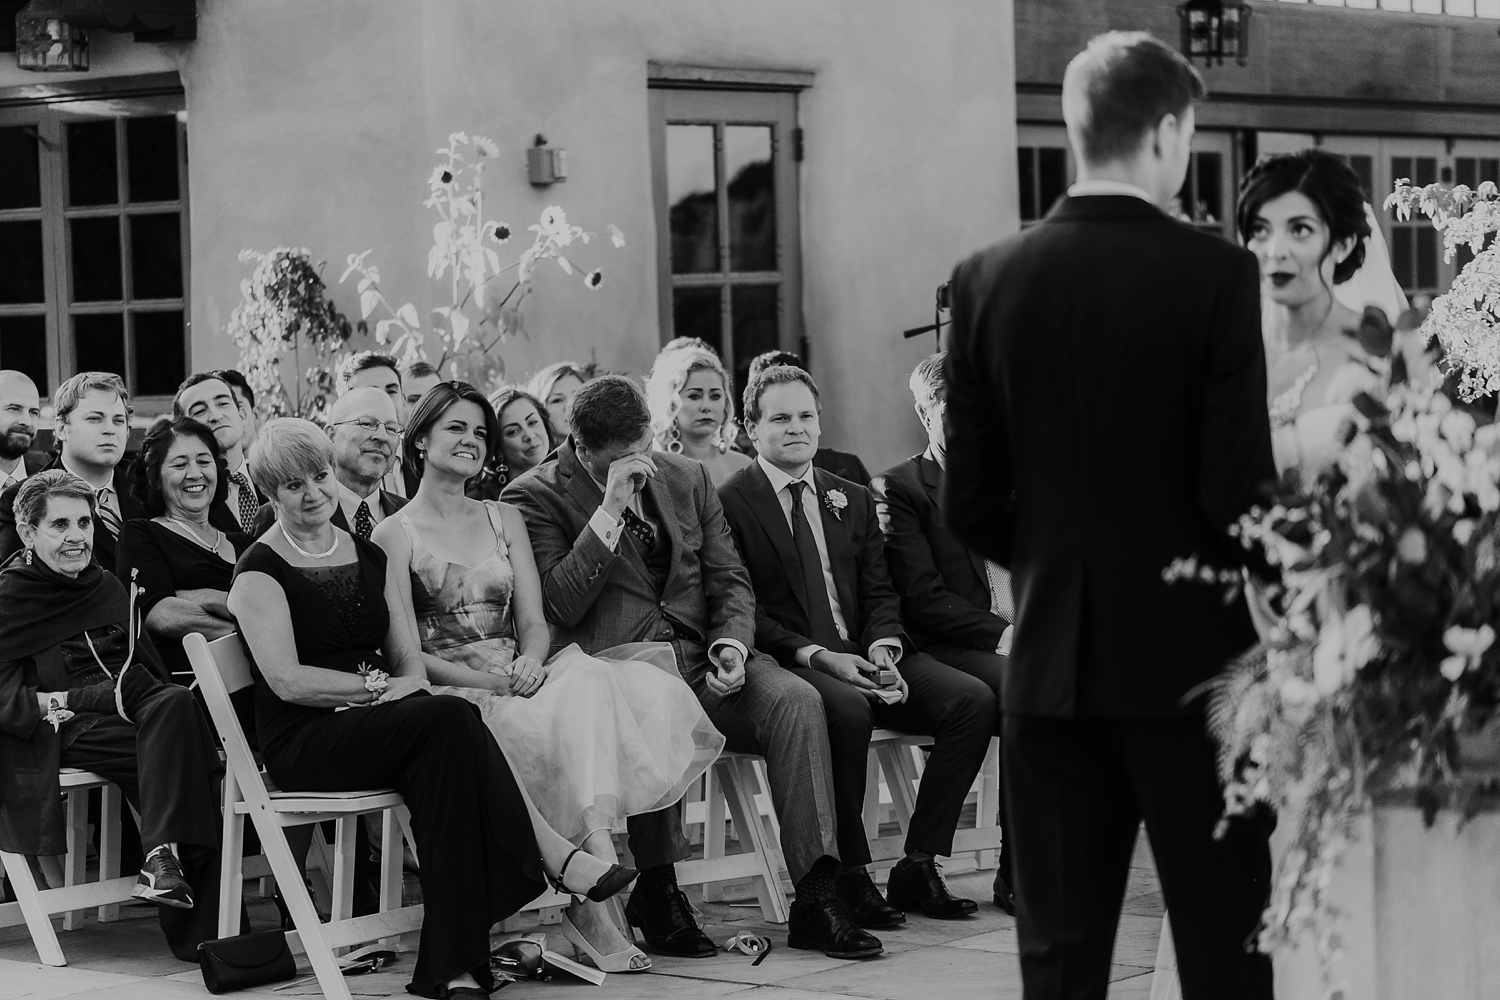 Alicia+lucia+photography+-+albuquerque+wedding+photographer+-+santa+fe+wedding+photography+-+new+mexico+wedding+photographer+-+la+fonda+santa+fe+wedding+-+santa+fe+fall+wedding+-+la+fonda+fall+wedding_0070.jpg